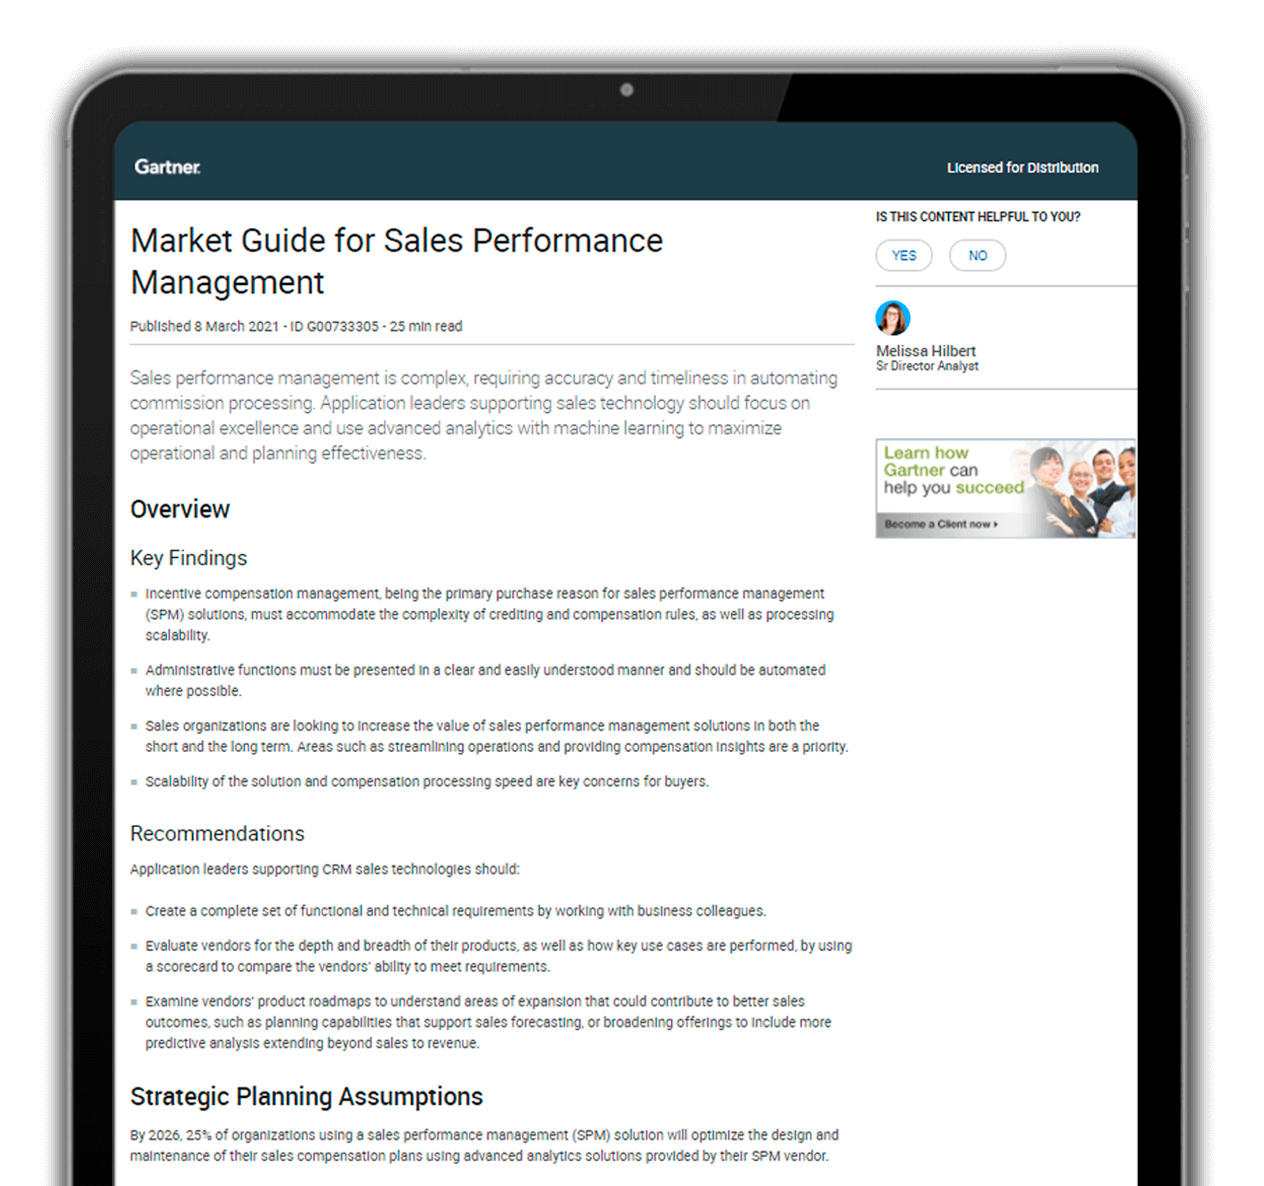 Blitz is proudly recognized by Gartner as Representative Vendor for Sales Performance in its 2021 Market Guide